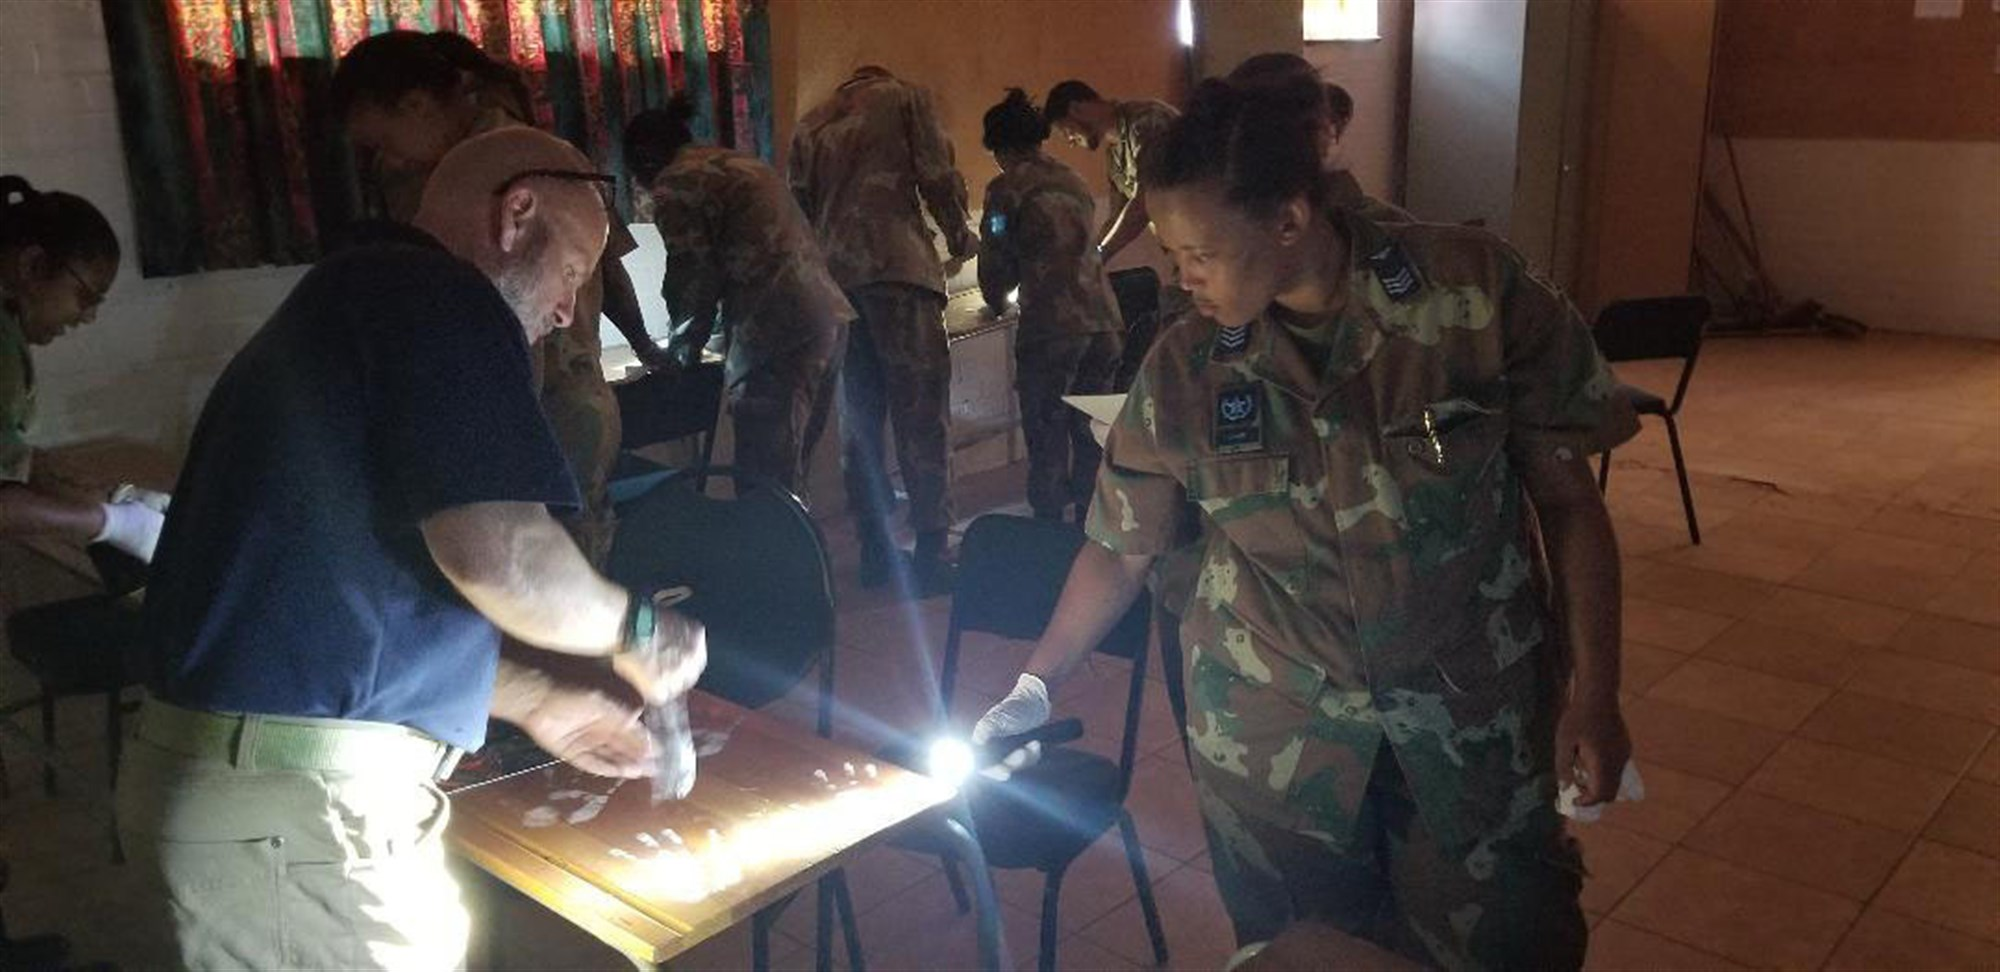 Naval Criminal Investigative Service Special Agent David Reid teaches evidence collection techniques to  South African Military Police Soldiers during an exchange visit on October 10, 2018. Soldiers from the New York Army National Guard also took  part in the  exchange program at the South African National Defense Forces Military Police School during an exchange visit there on Oct. 10-11, 2018. Twelve New York Army National Guard experts in civil support operations, military police, law enforcement, and self-defense took part in the exchange visit. ( U.S. Army National Guard phot by Sgt. Kristin Rosss)